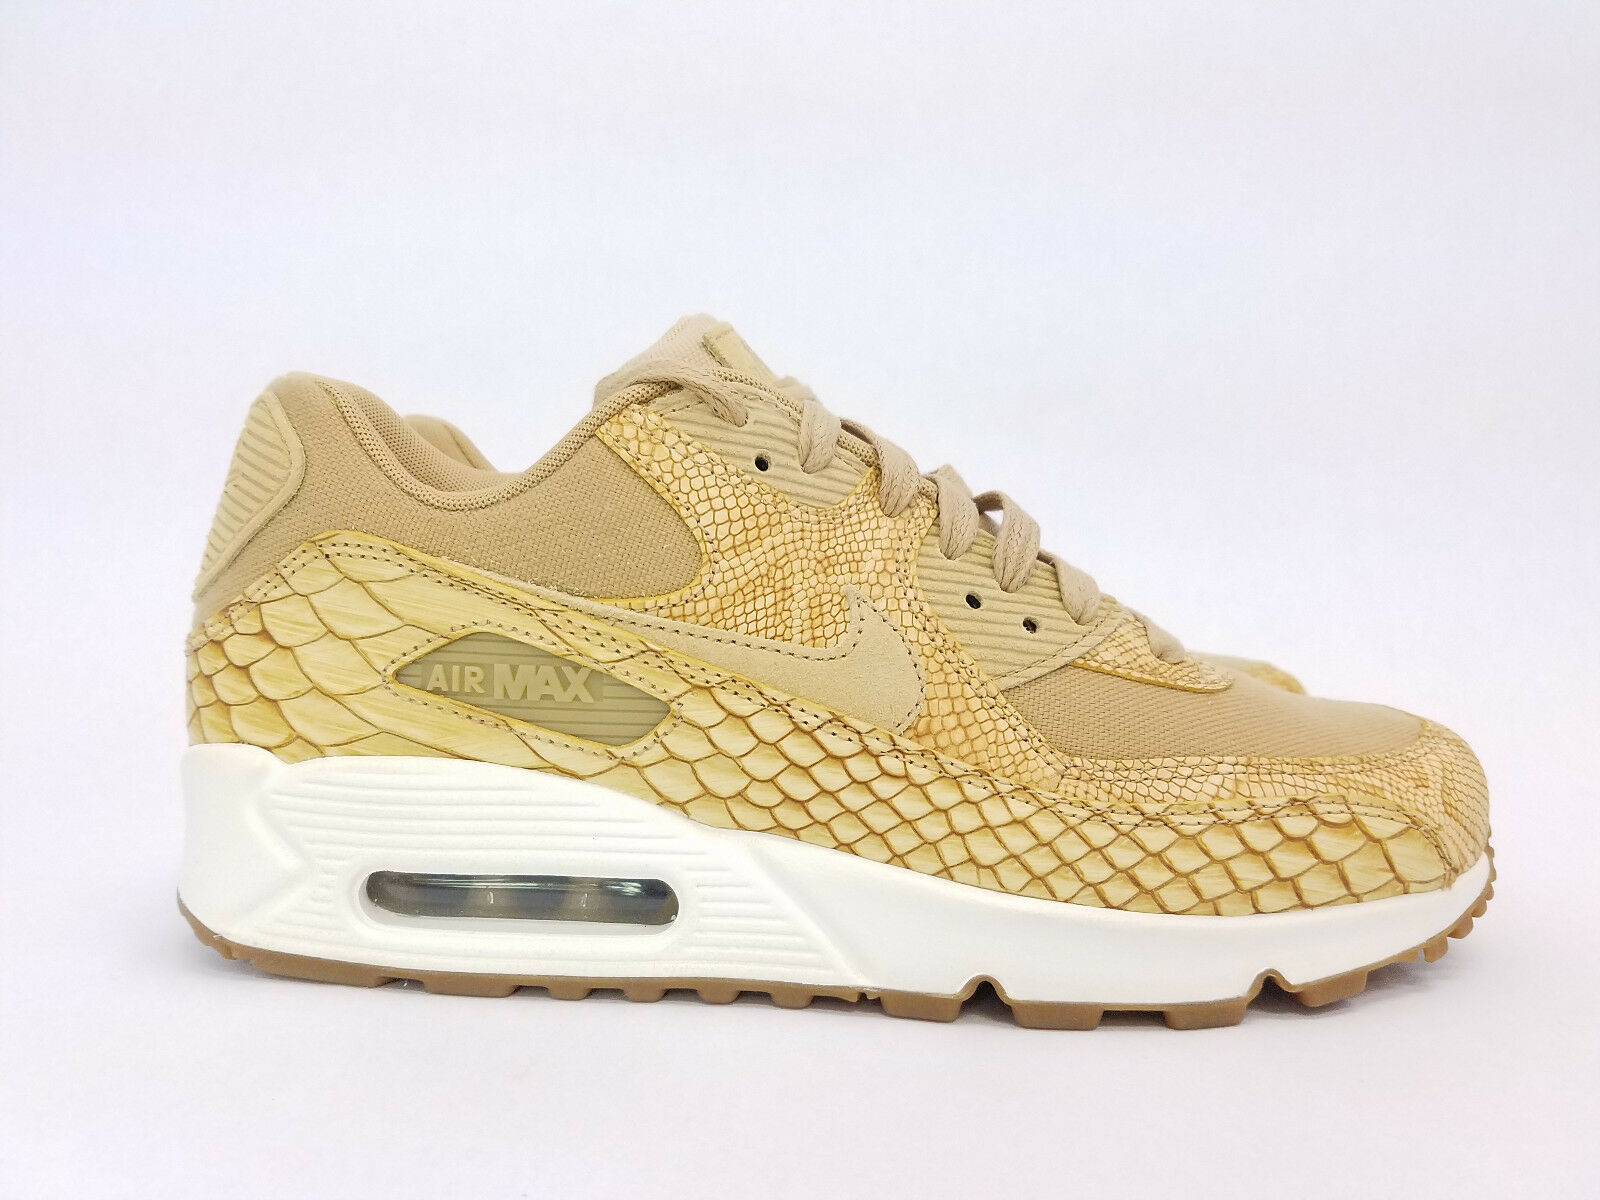 Nike Air Max 90 Premium LTR Vachetta Snake Skin Sz 9 NWOB AH8046-200 New shoes for men and women, limited time discount